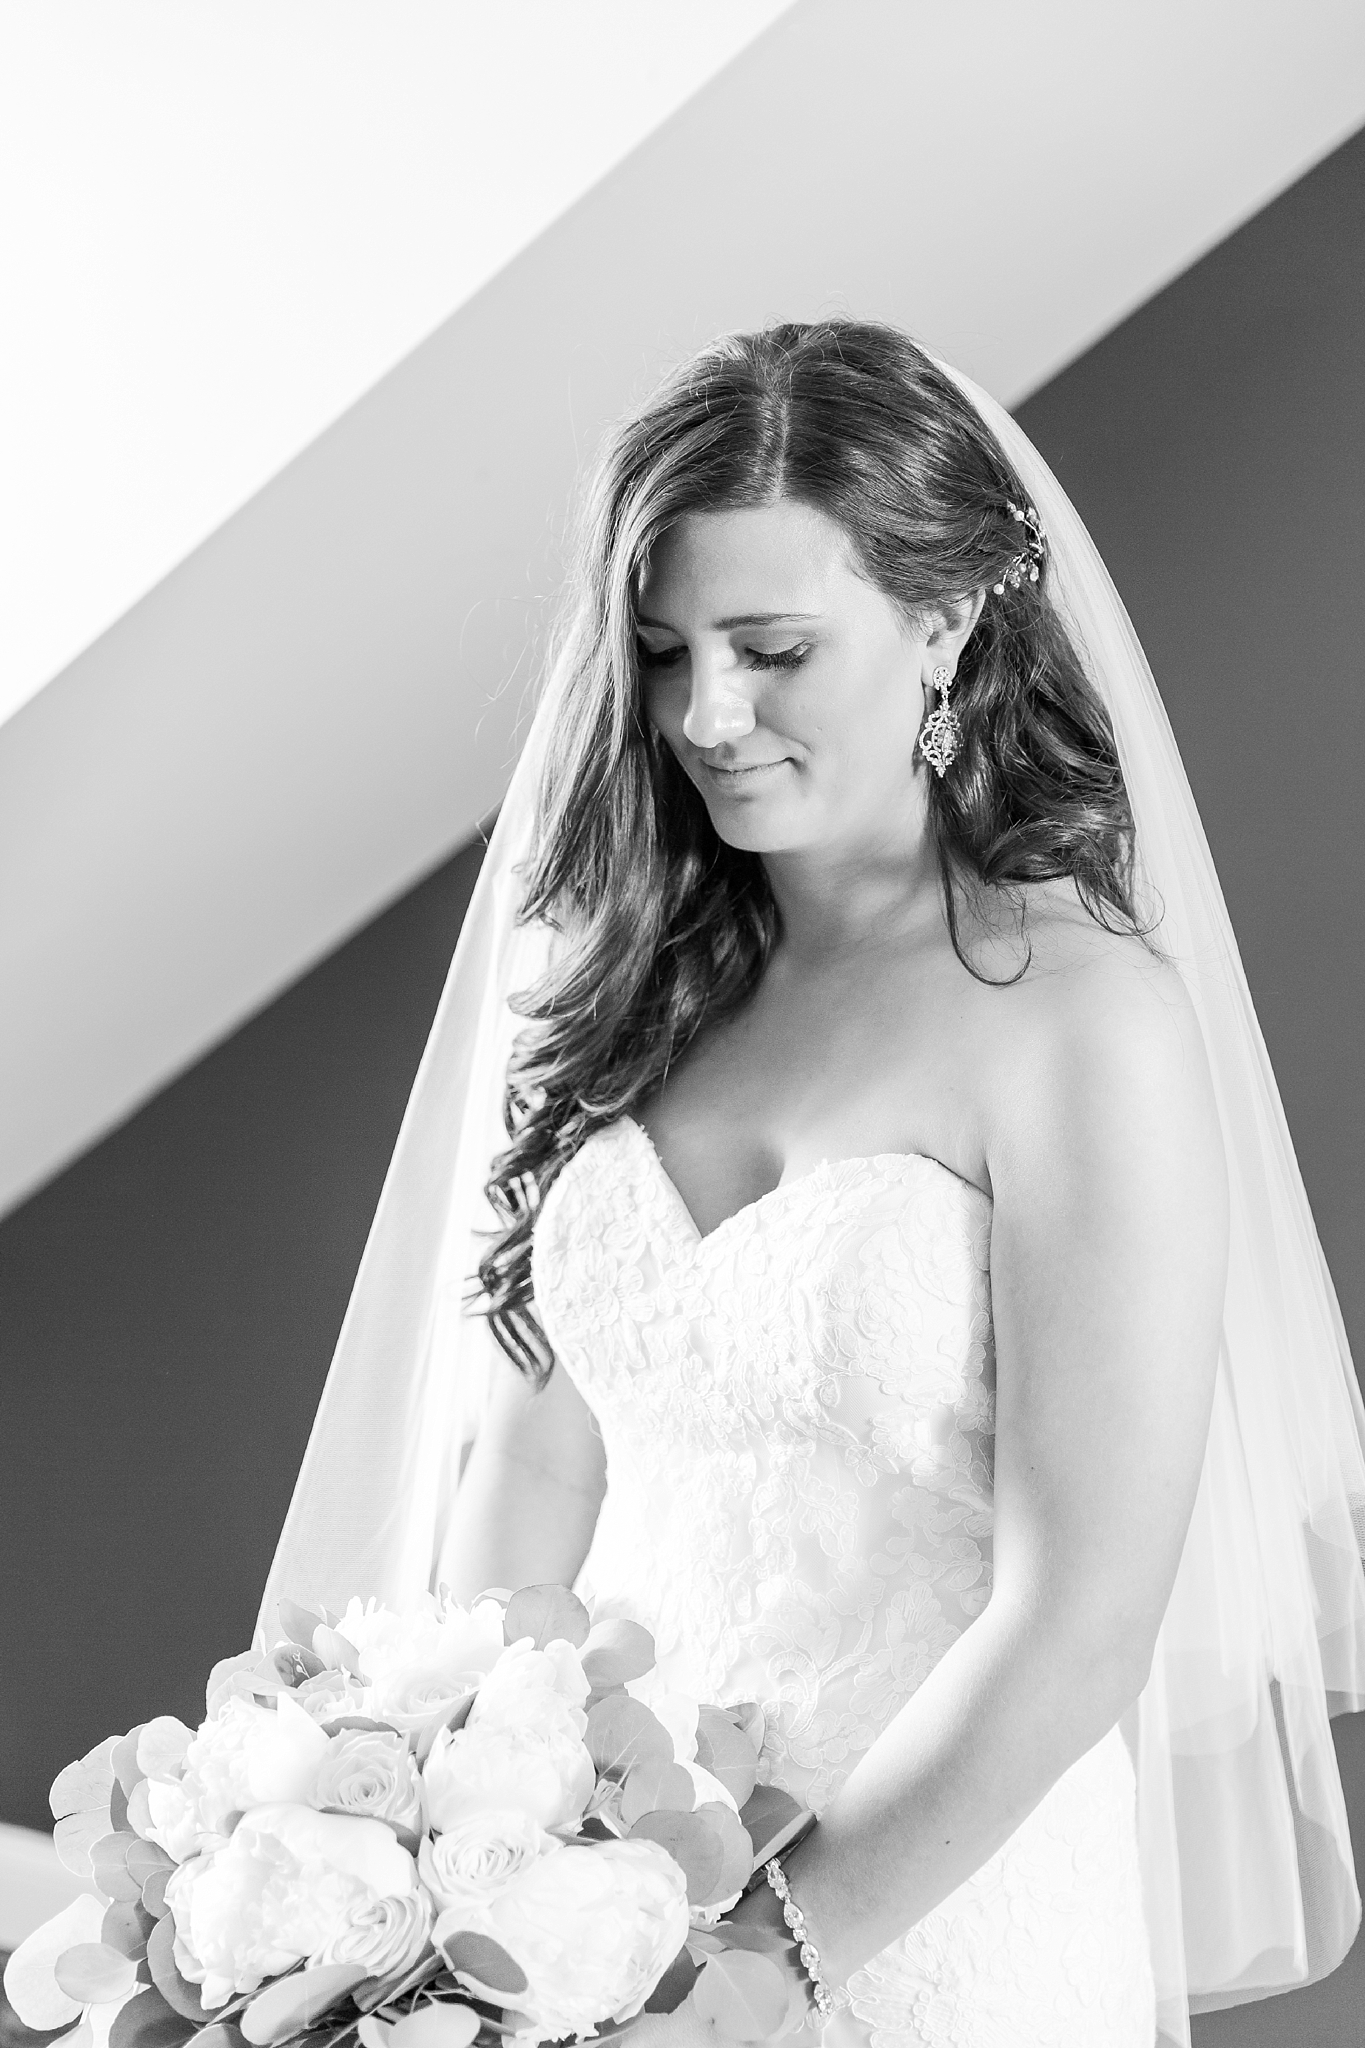 candid-timeless-wedding-photos-at-the-captains-club-in-grand-blanc-michigan-by-courtney-carolyn-photography_0022.jpg